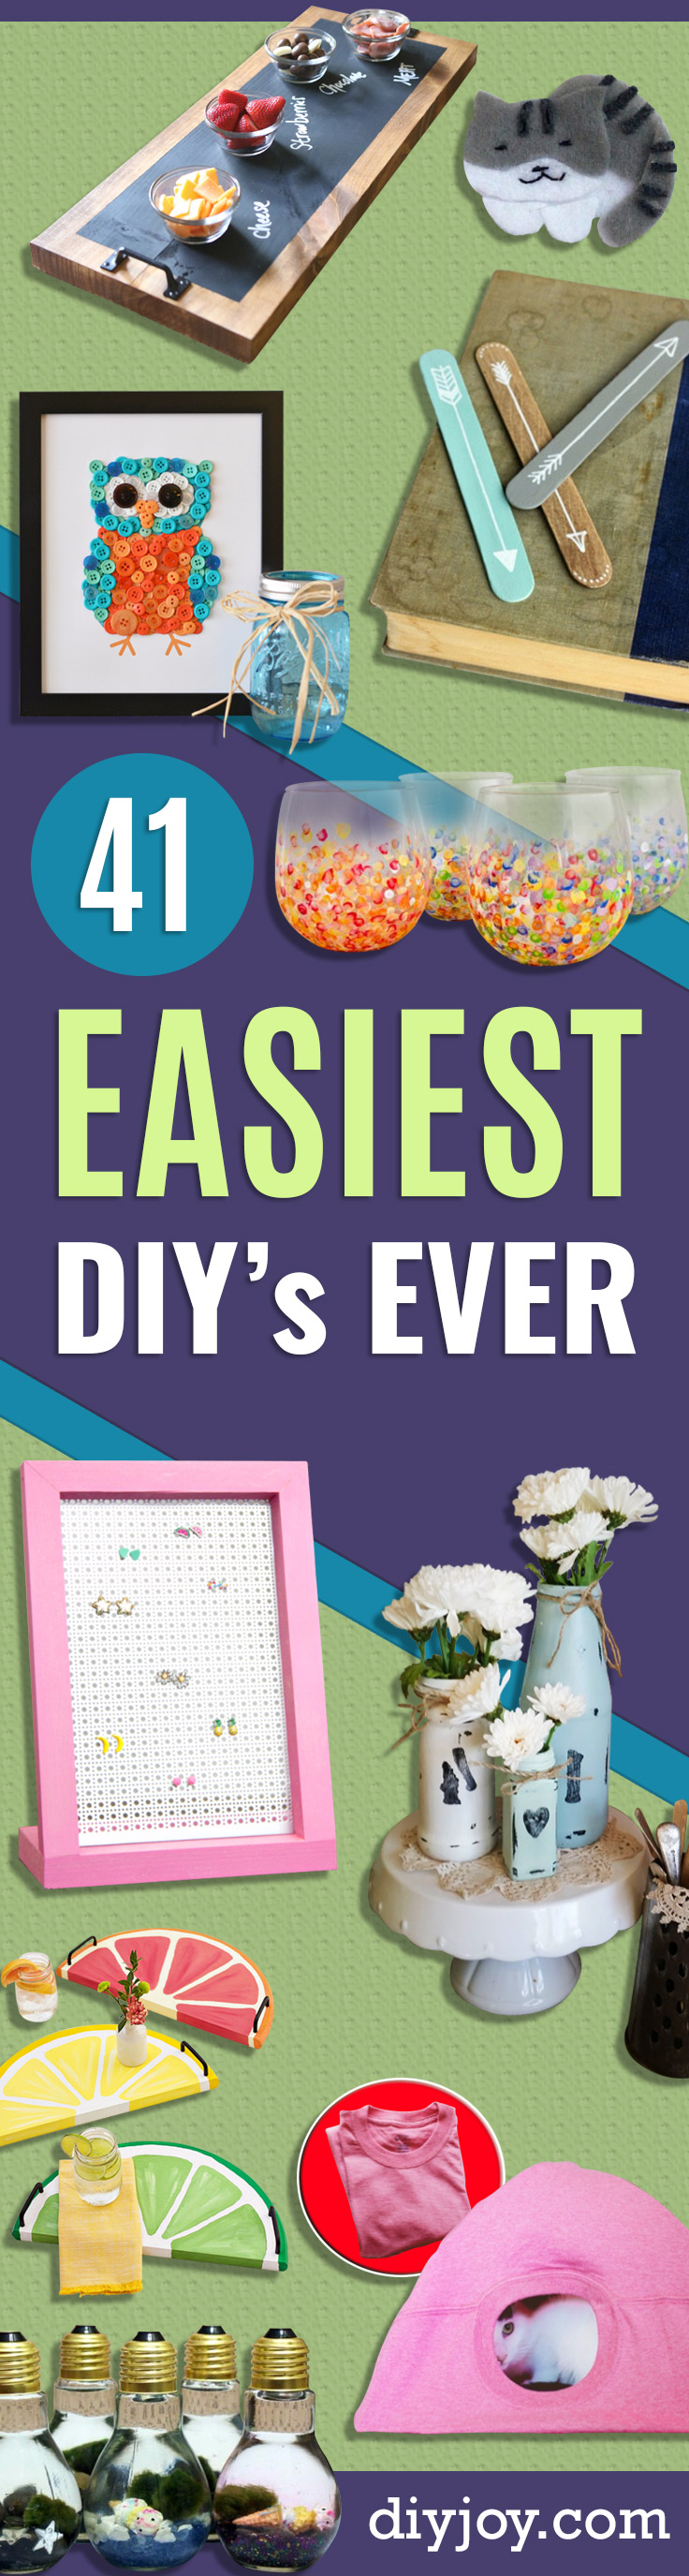 Easy DIY Ideas - easy crafts - Simple DIY Crafts and Projects - Quick Craft Ideas for Beginners, Cool Crafts To Make and Sell, Simple Home Decor, Fast DIY Gifts, Cheap and Quick Project Tutorials